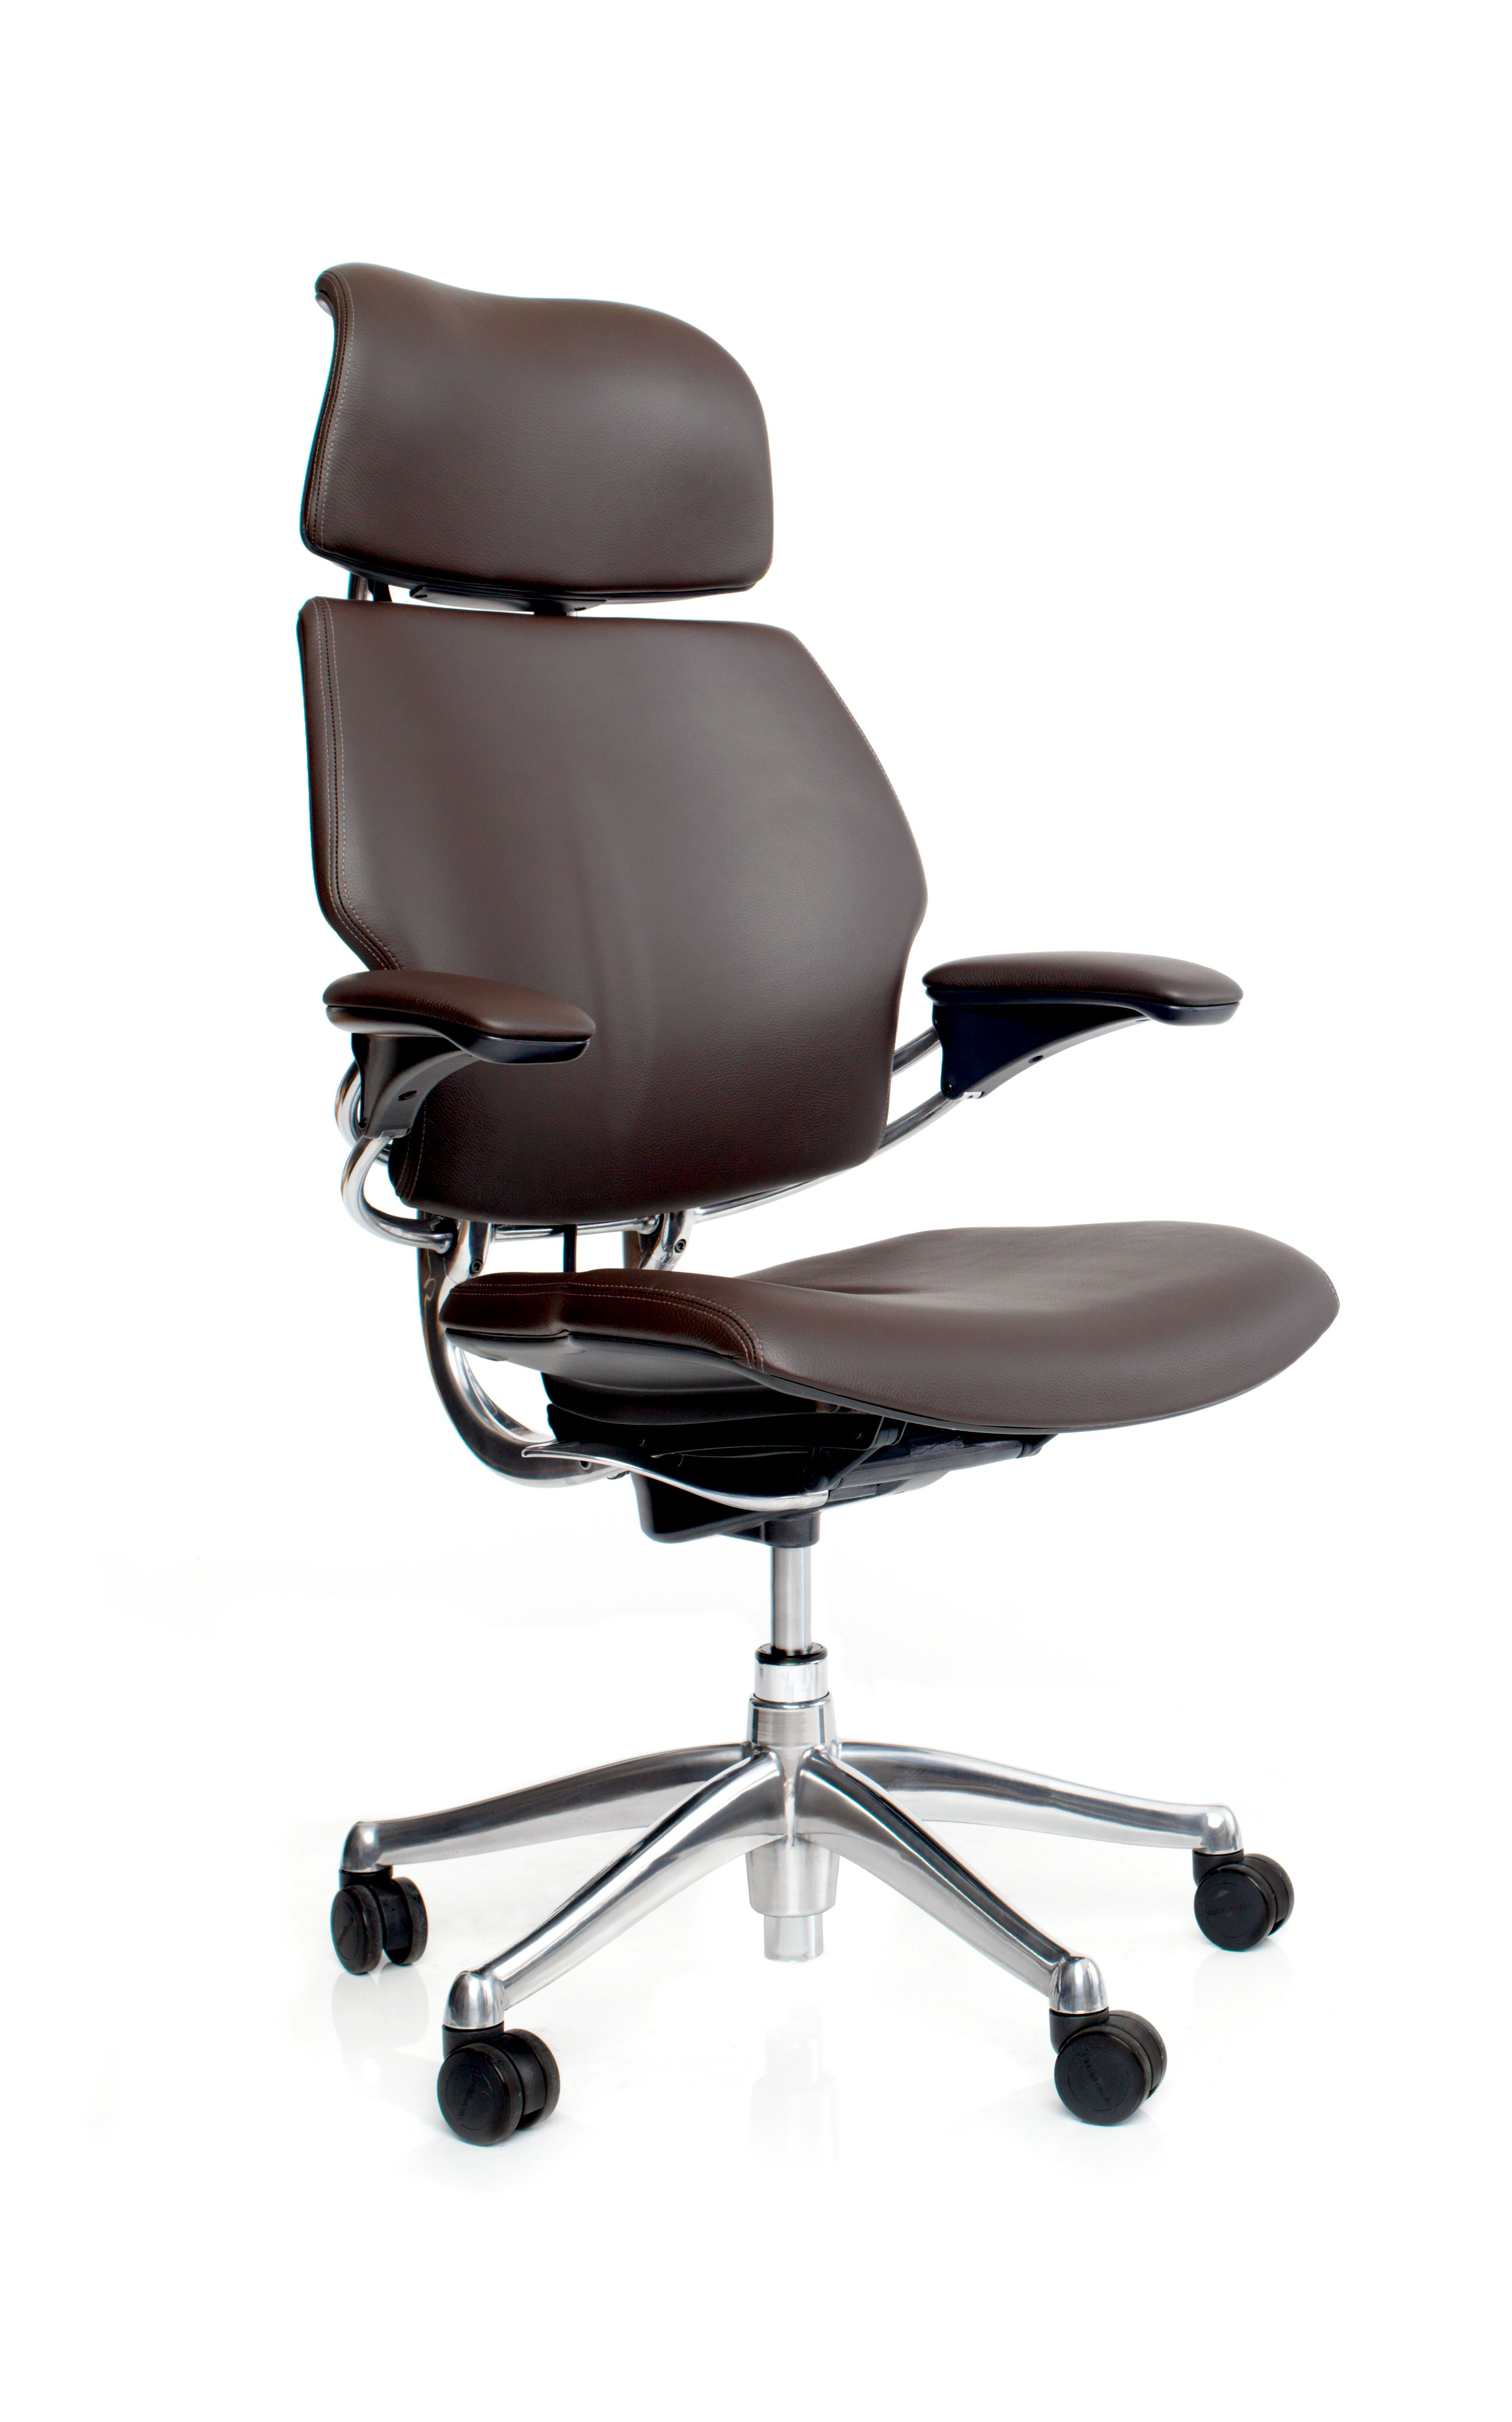 Freedom Furniture Head Office Freedom Headrest Chair Humanscale Niels Diffrient Brown